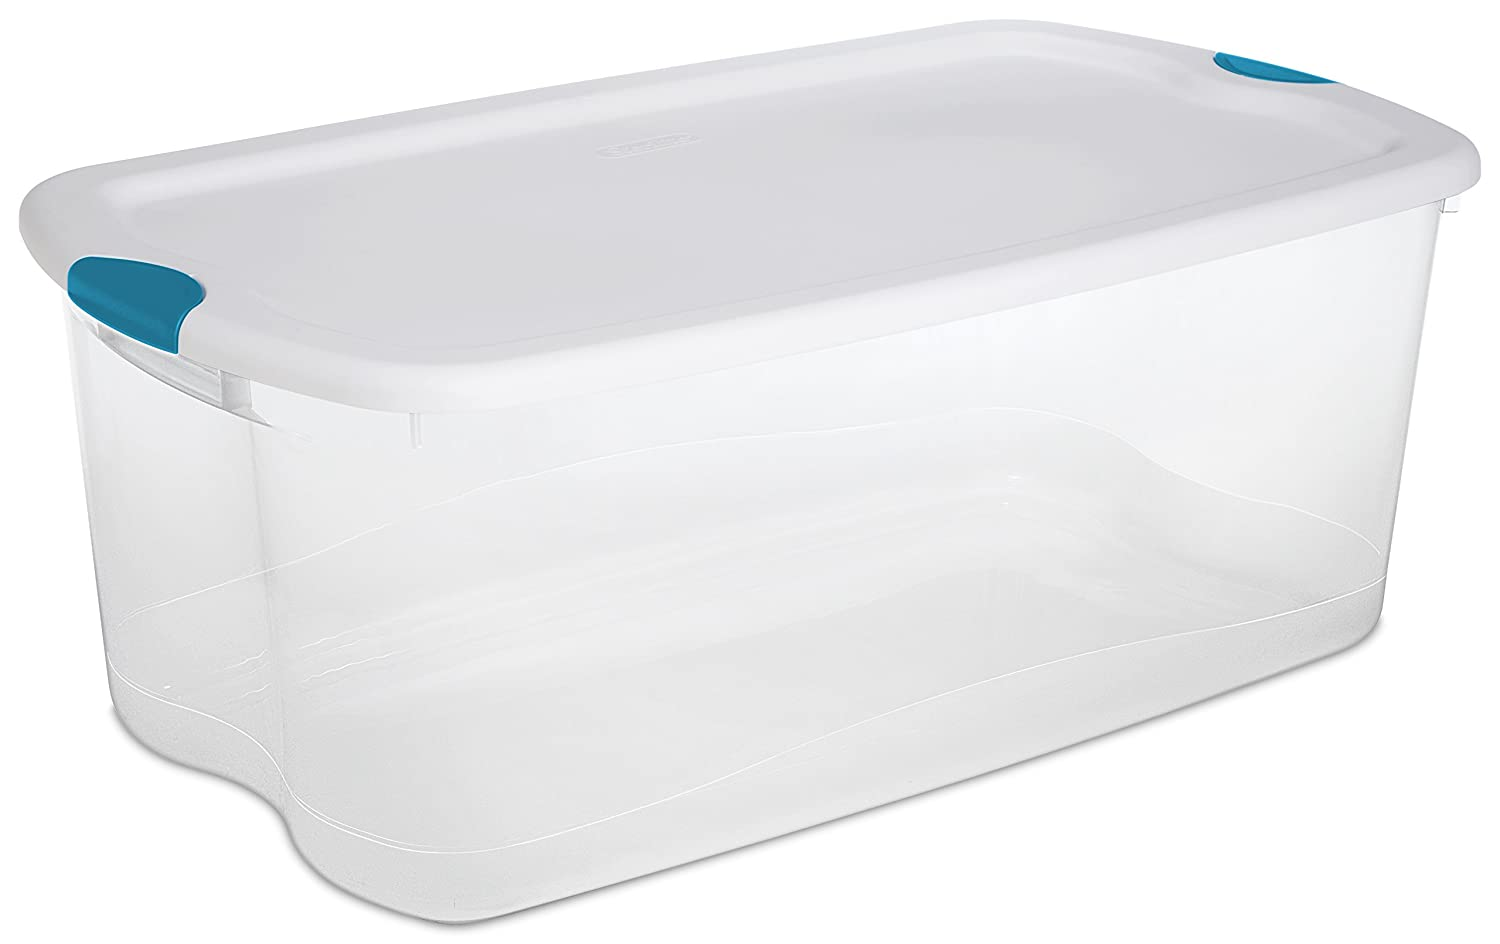 Amazoncom STERILITE 18898004 106 Quart100 Liter Latch Box White